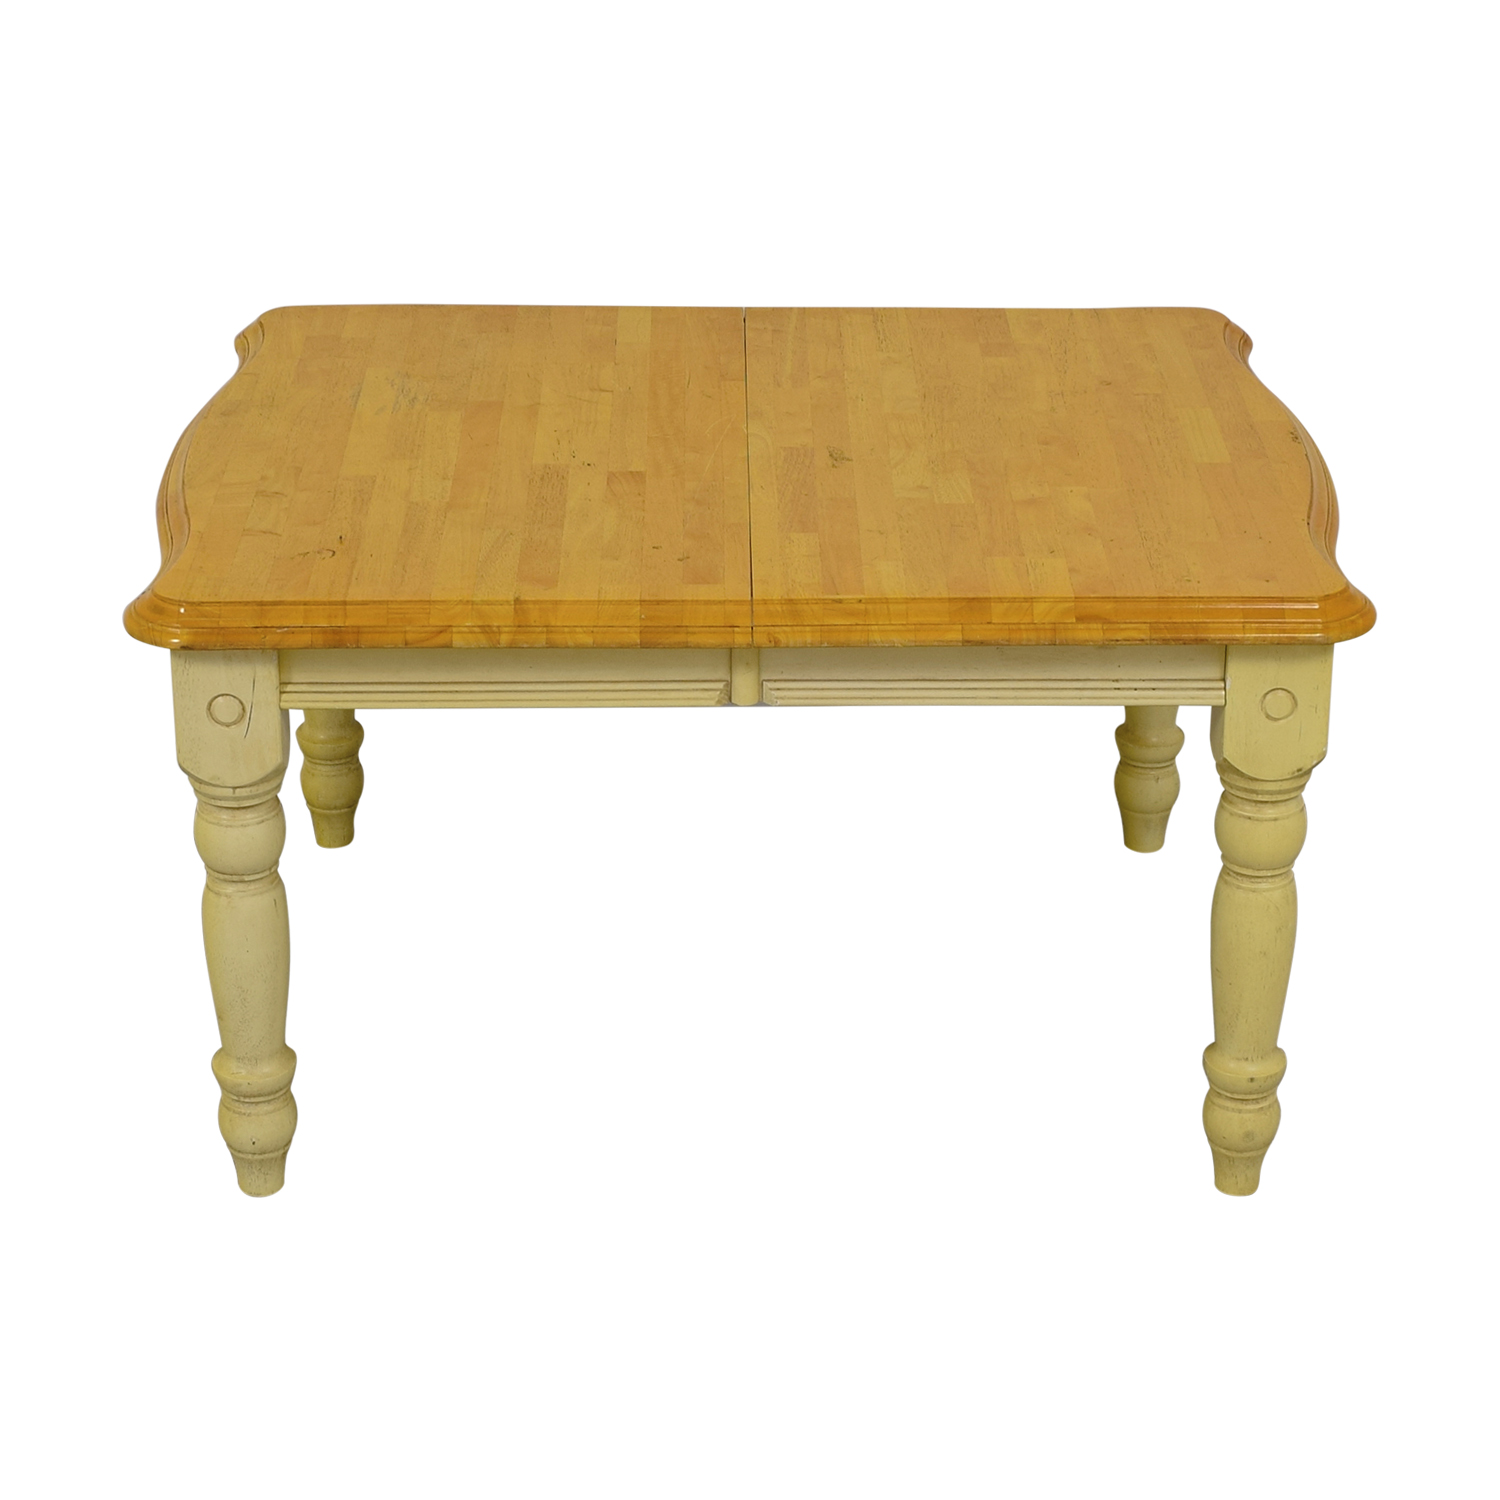 shop Limahsoon Limahsoon Cream Distressed Wood Top Dining Table online